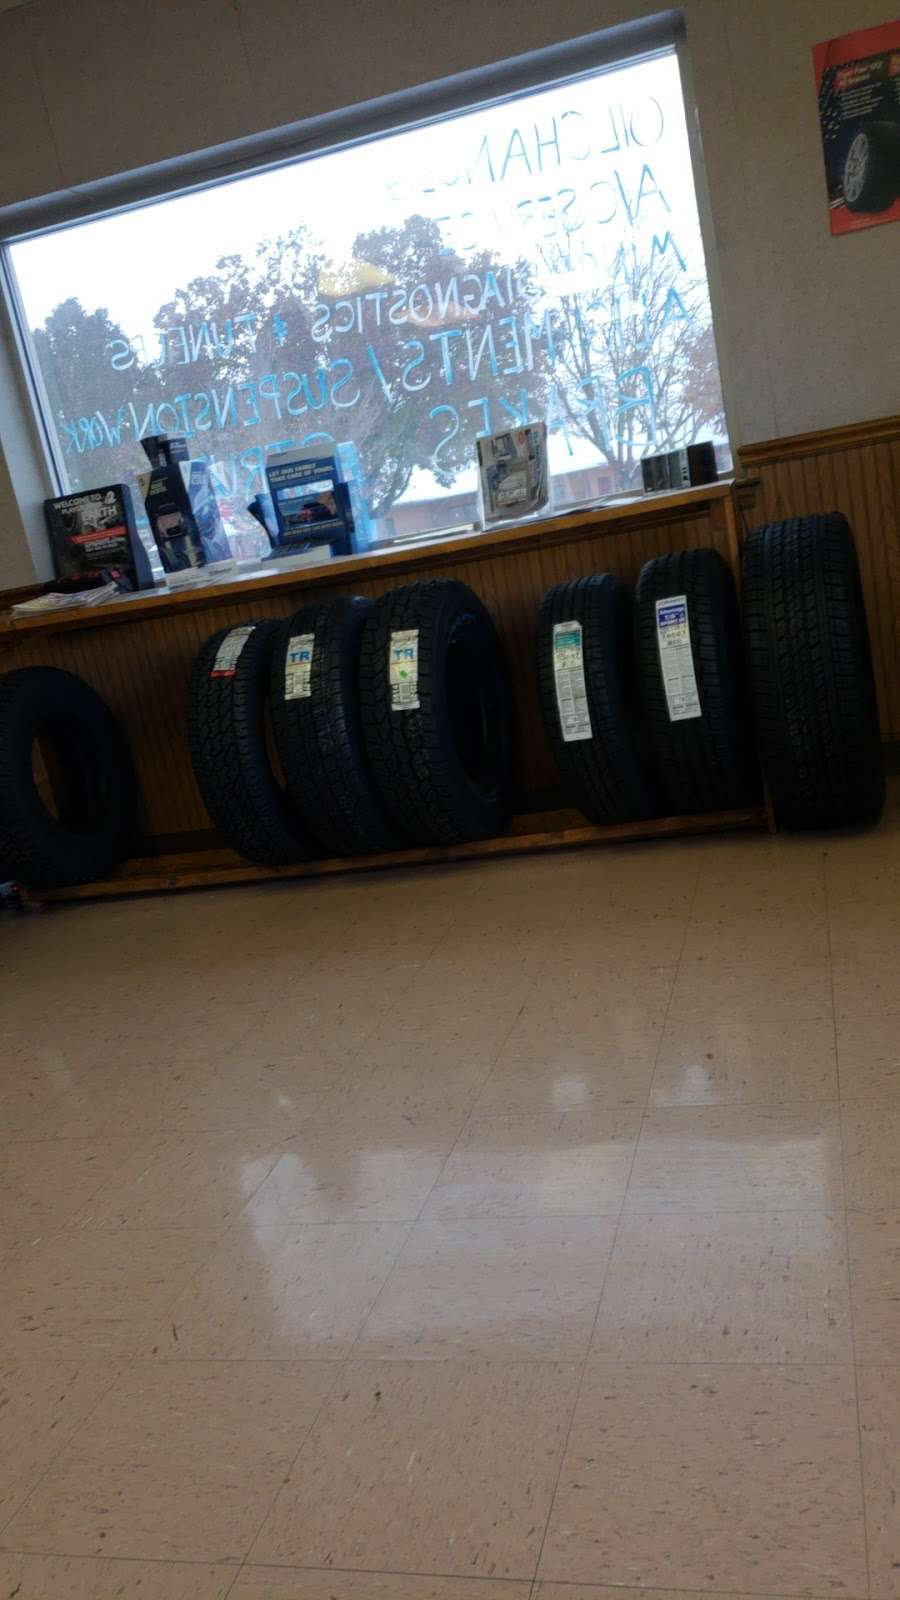 D&G New and Used Tires - car repair    Photo 6 of 10   Address: 850 Pennsylvania Ave, Hagerstown, MD 21742, USA   Phone: (301) 733-1450